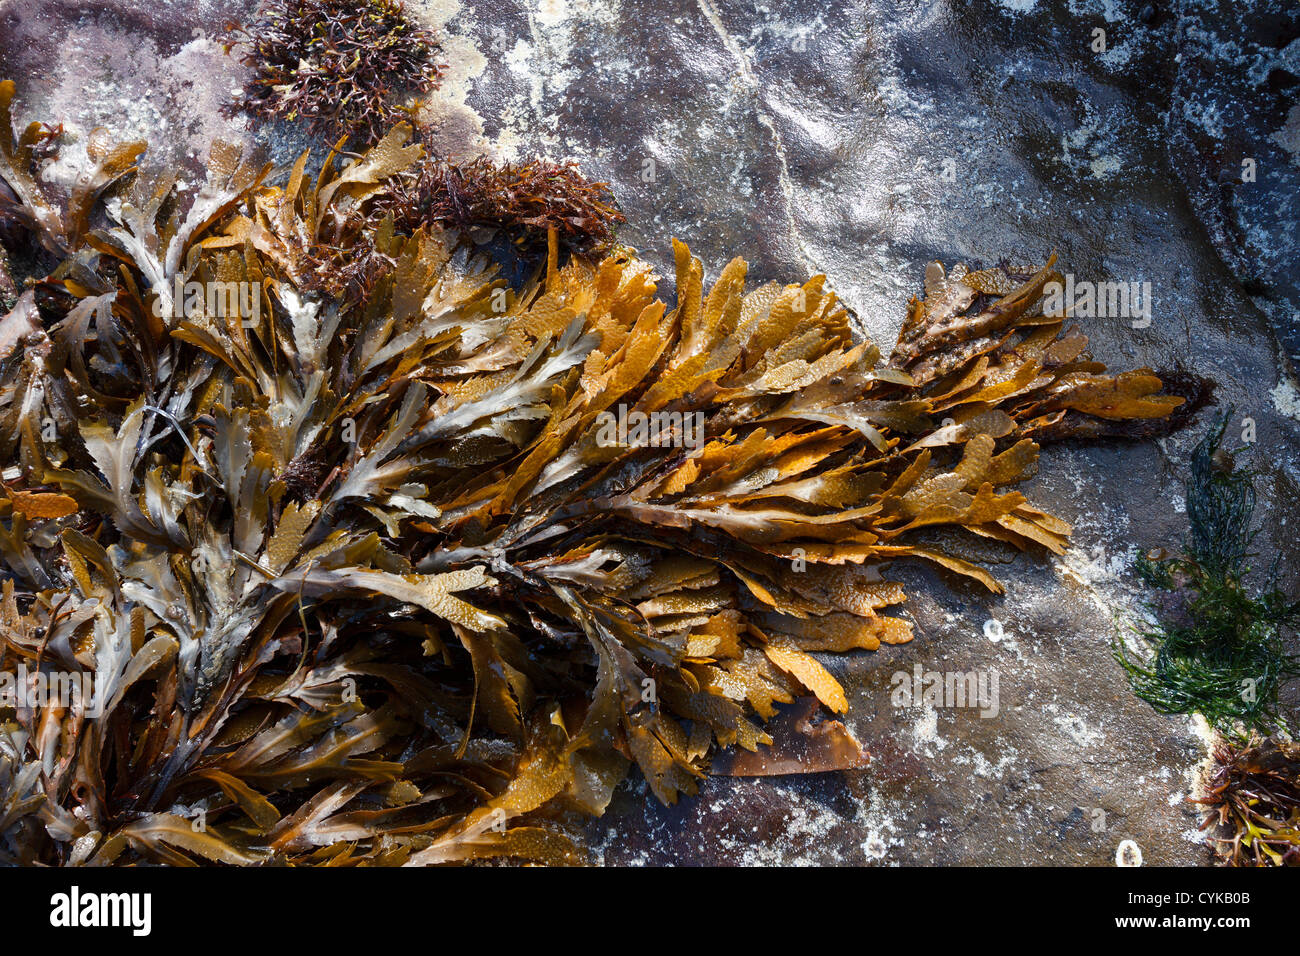 Brown / Green Toothed Wrack ( Fucus Serratus) seaweed lying on smooth rock on Scottish Beach, Scotland, UK Stock Photo